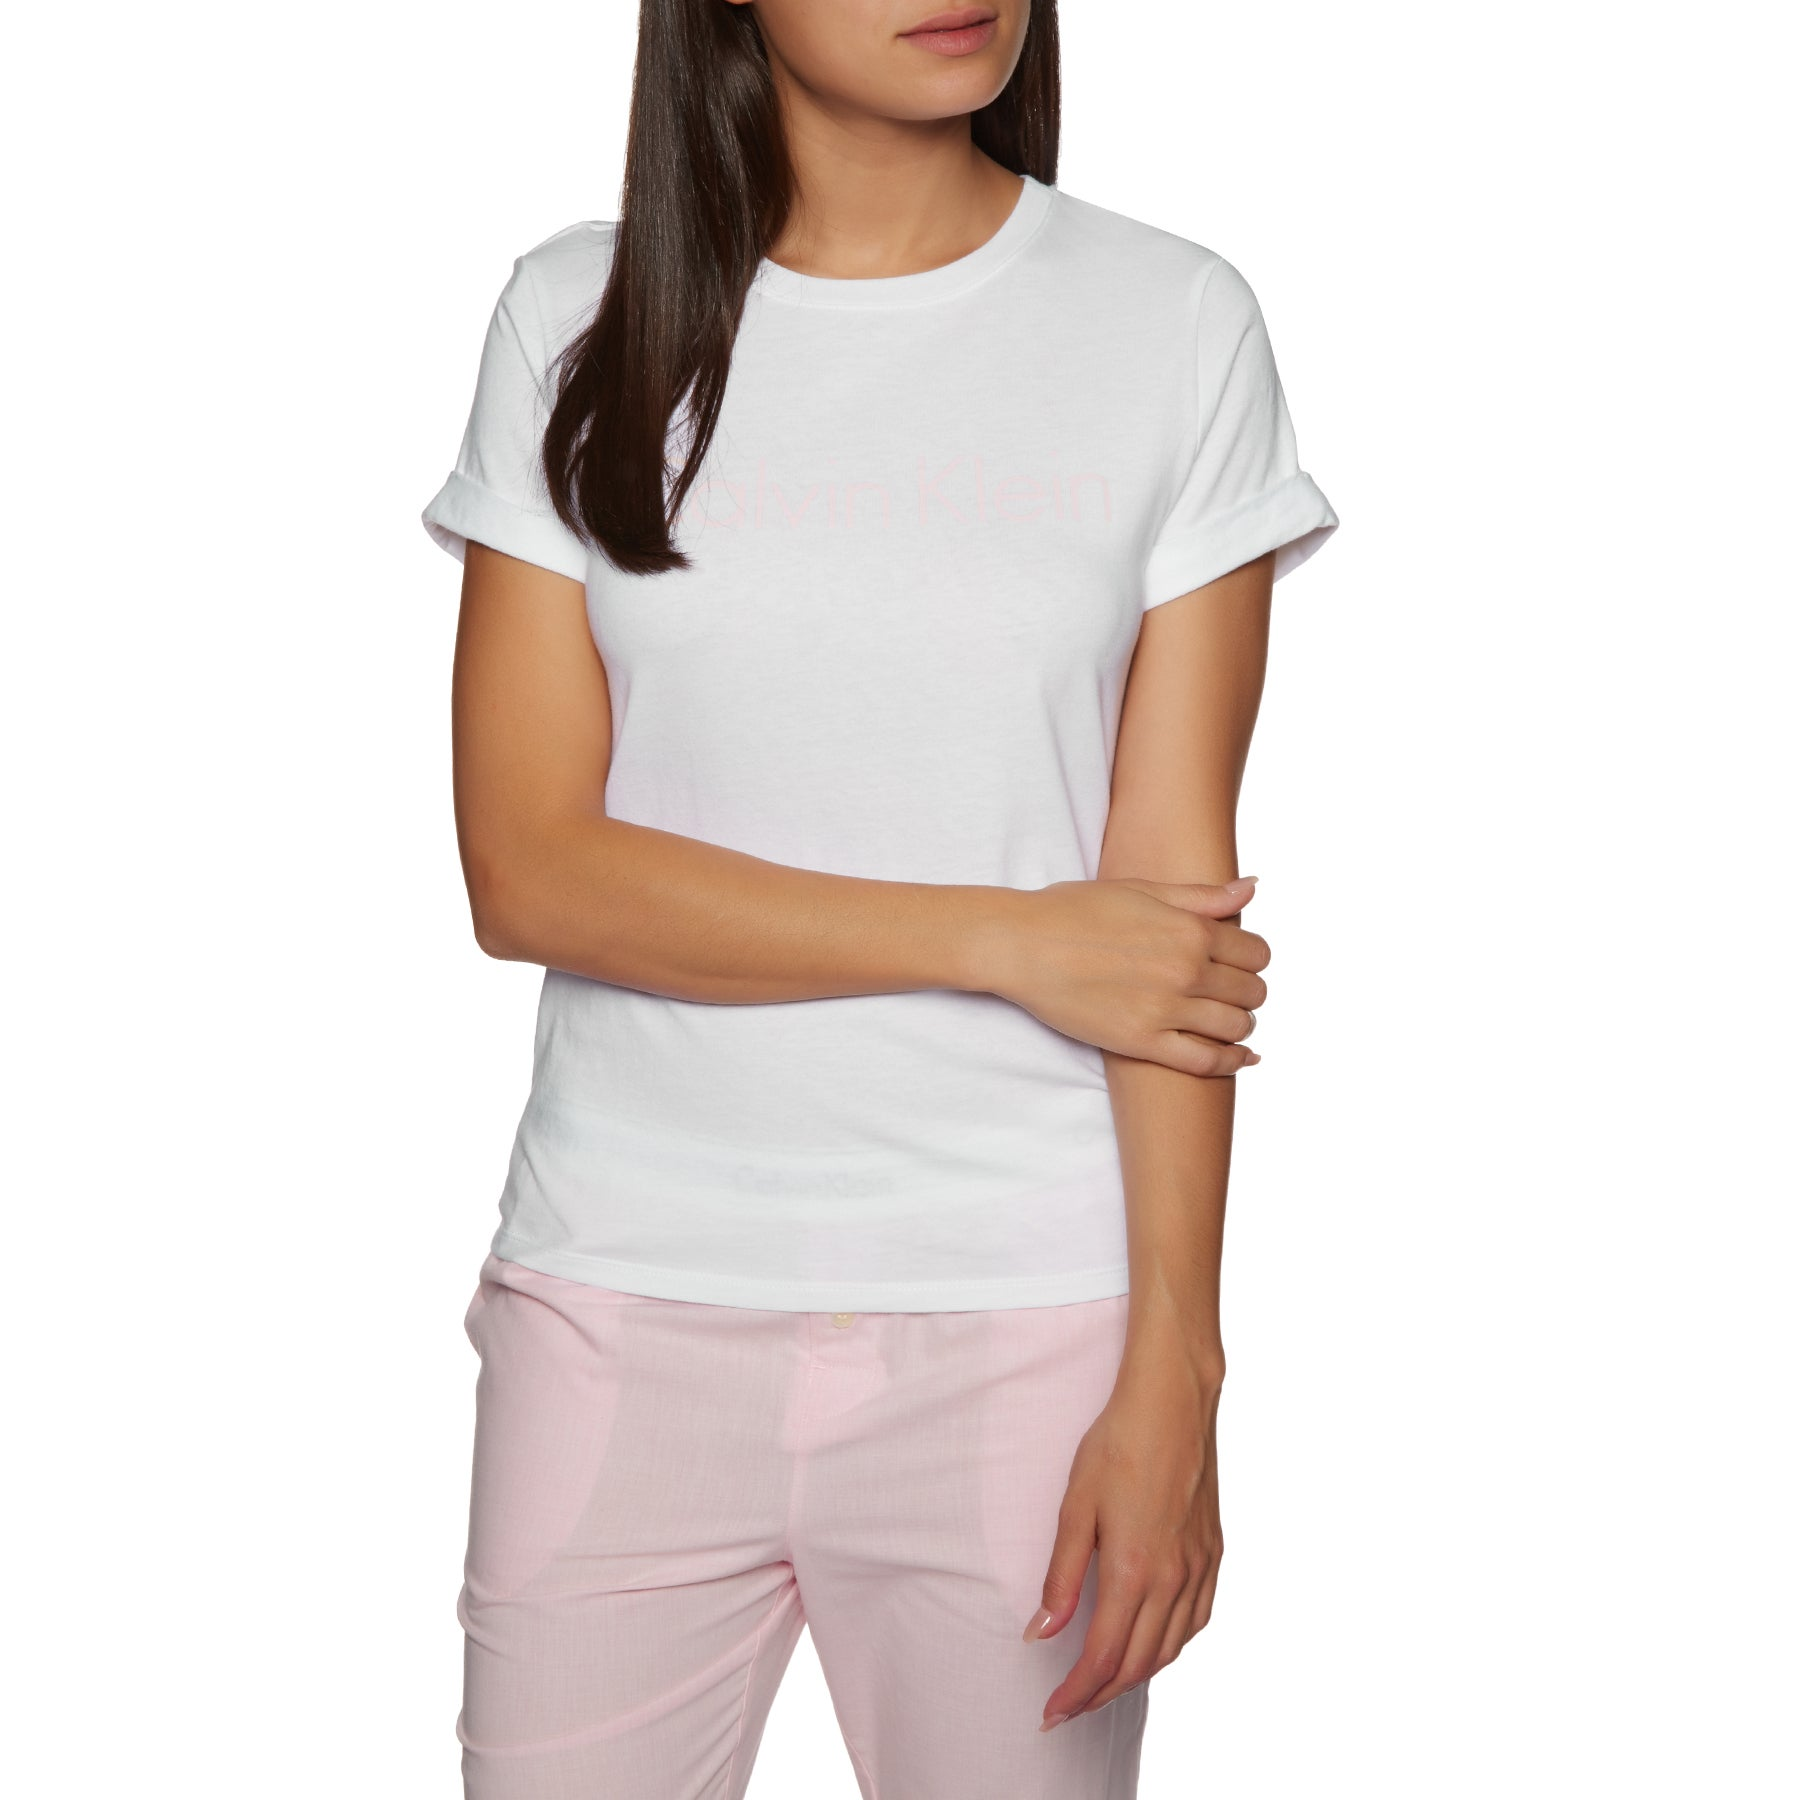 Calvin Klein Cotton Coord Top S/s Crew Neck Womens Short Sleeve T-Shirt - White W Nymphs Thigh